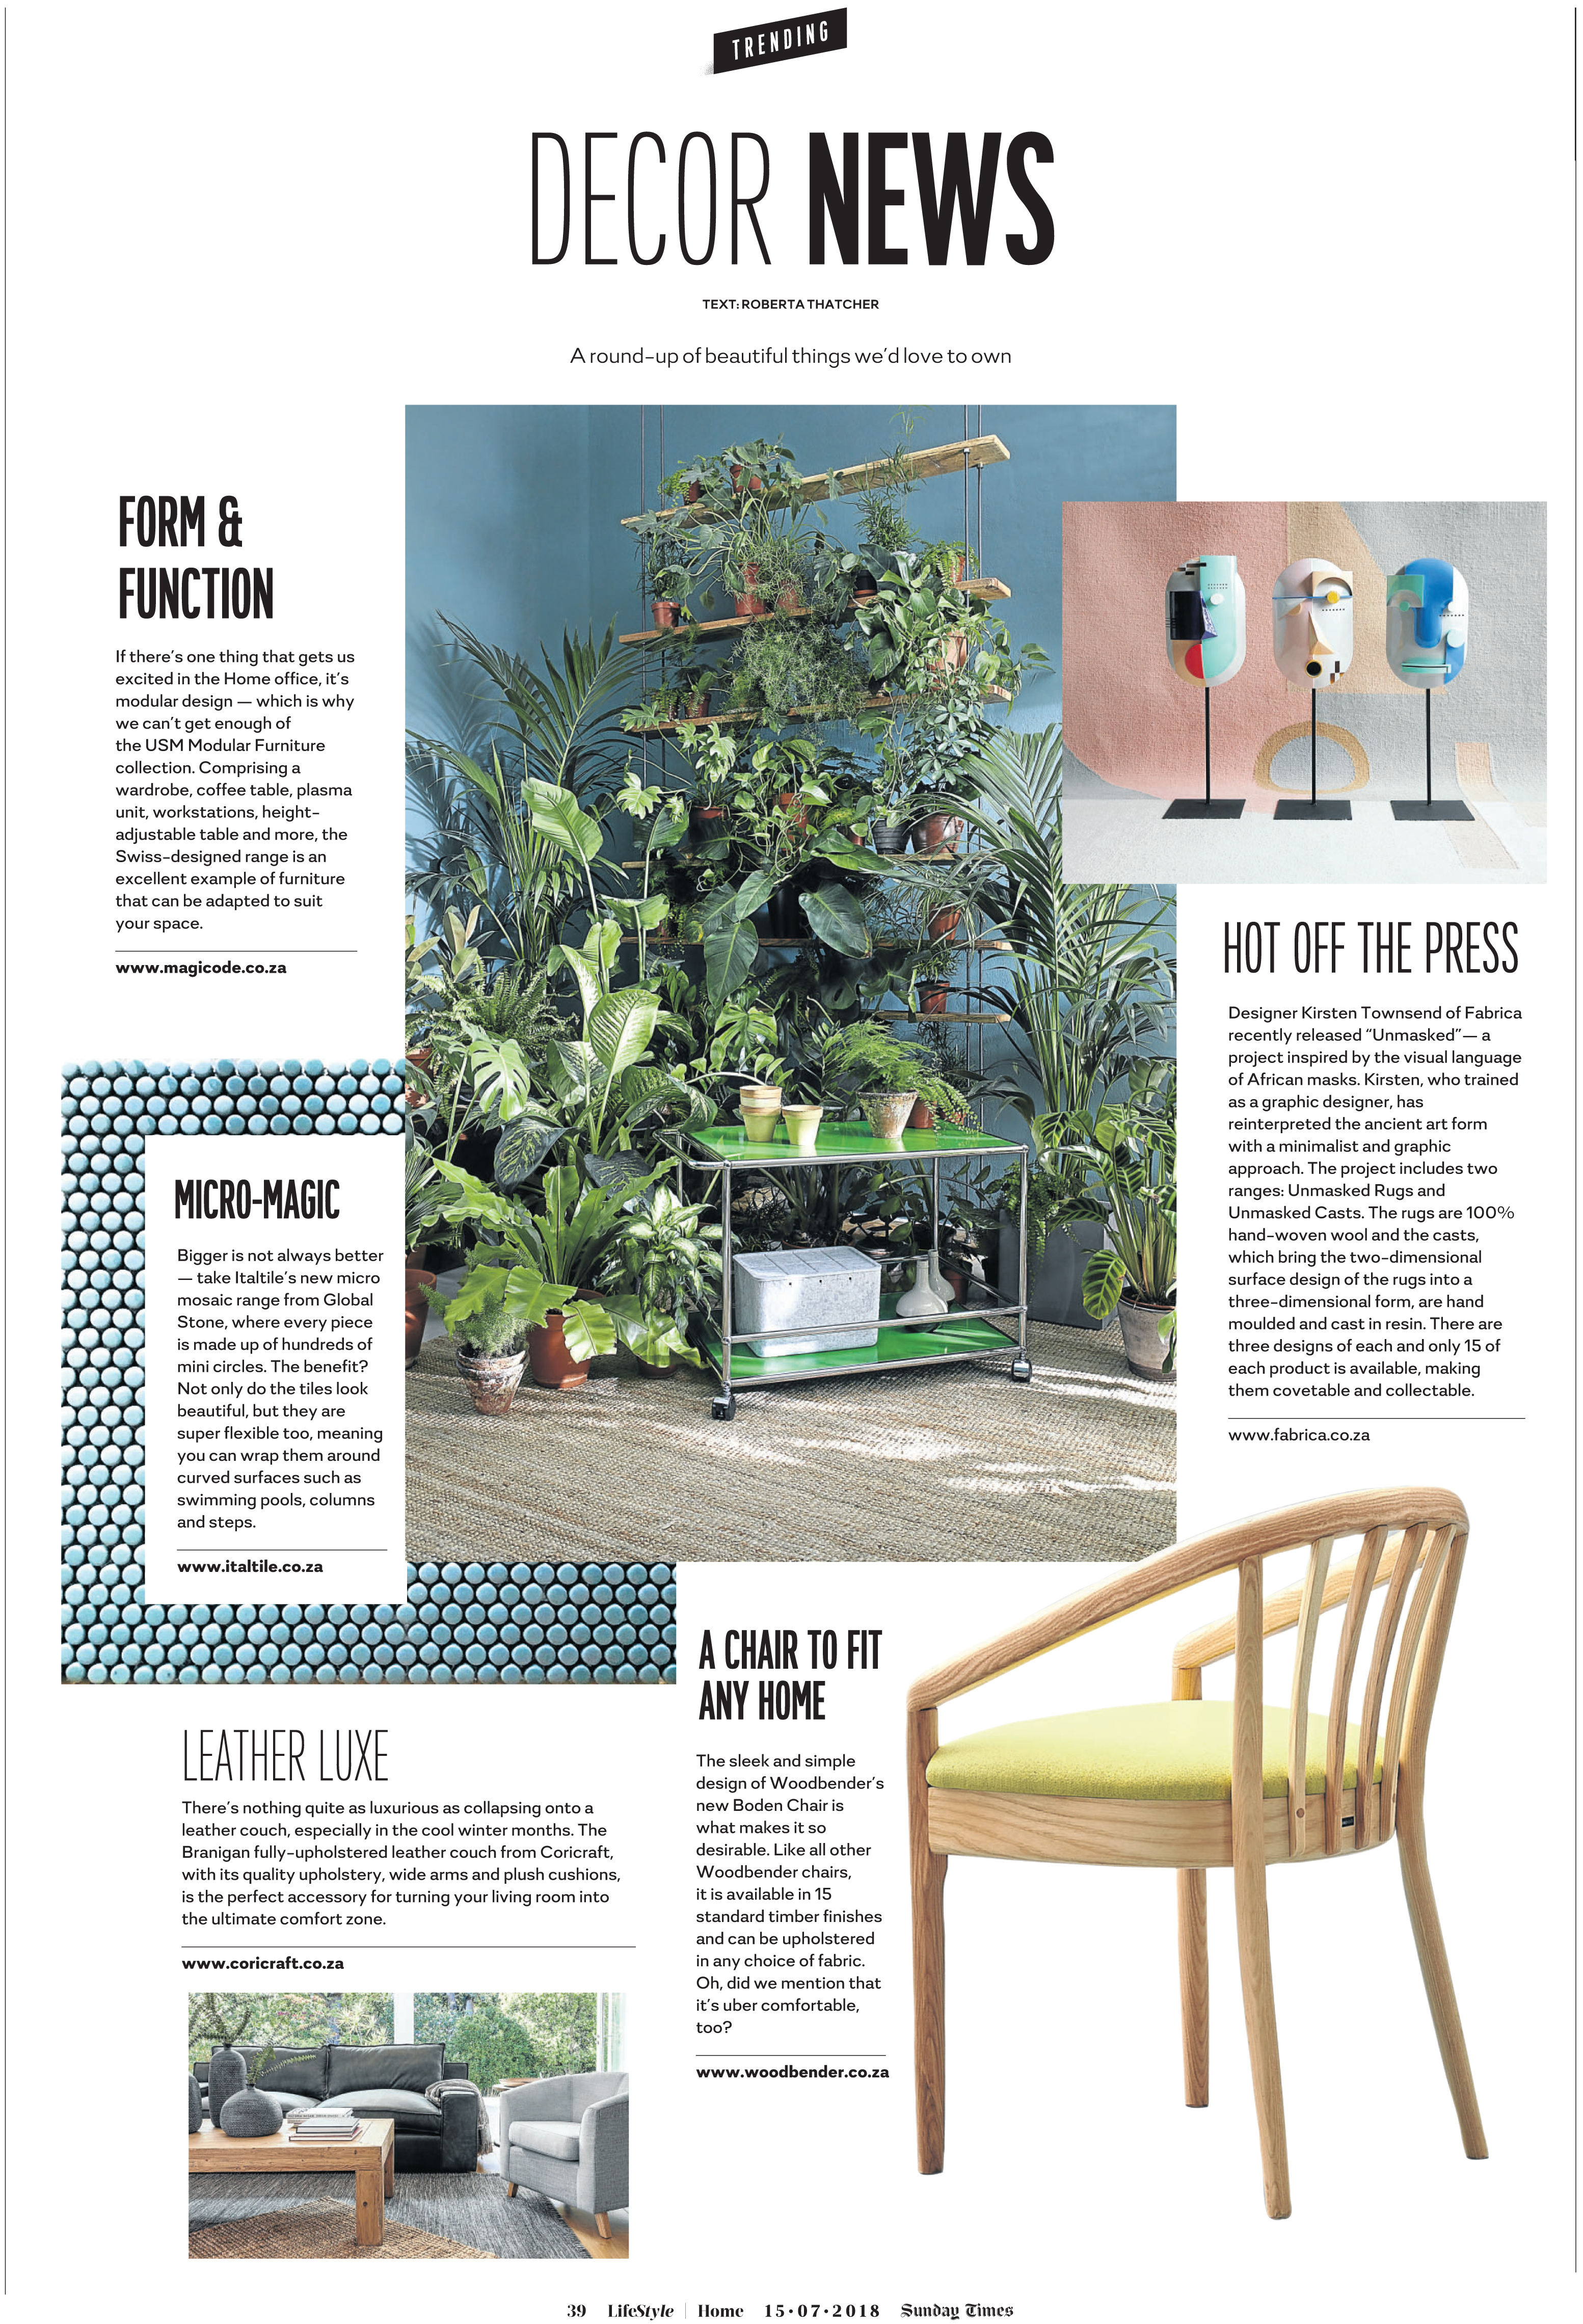 Form and Function – Decor News, Sunday Times Home Weekly, 15 July 2018